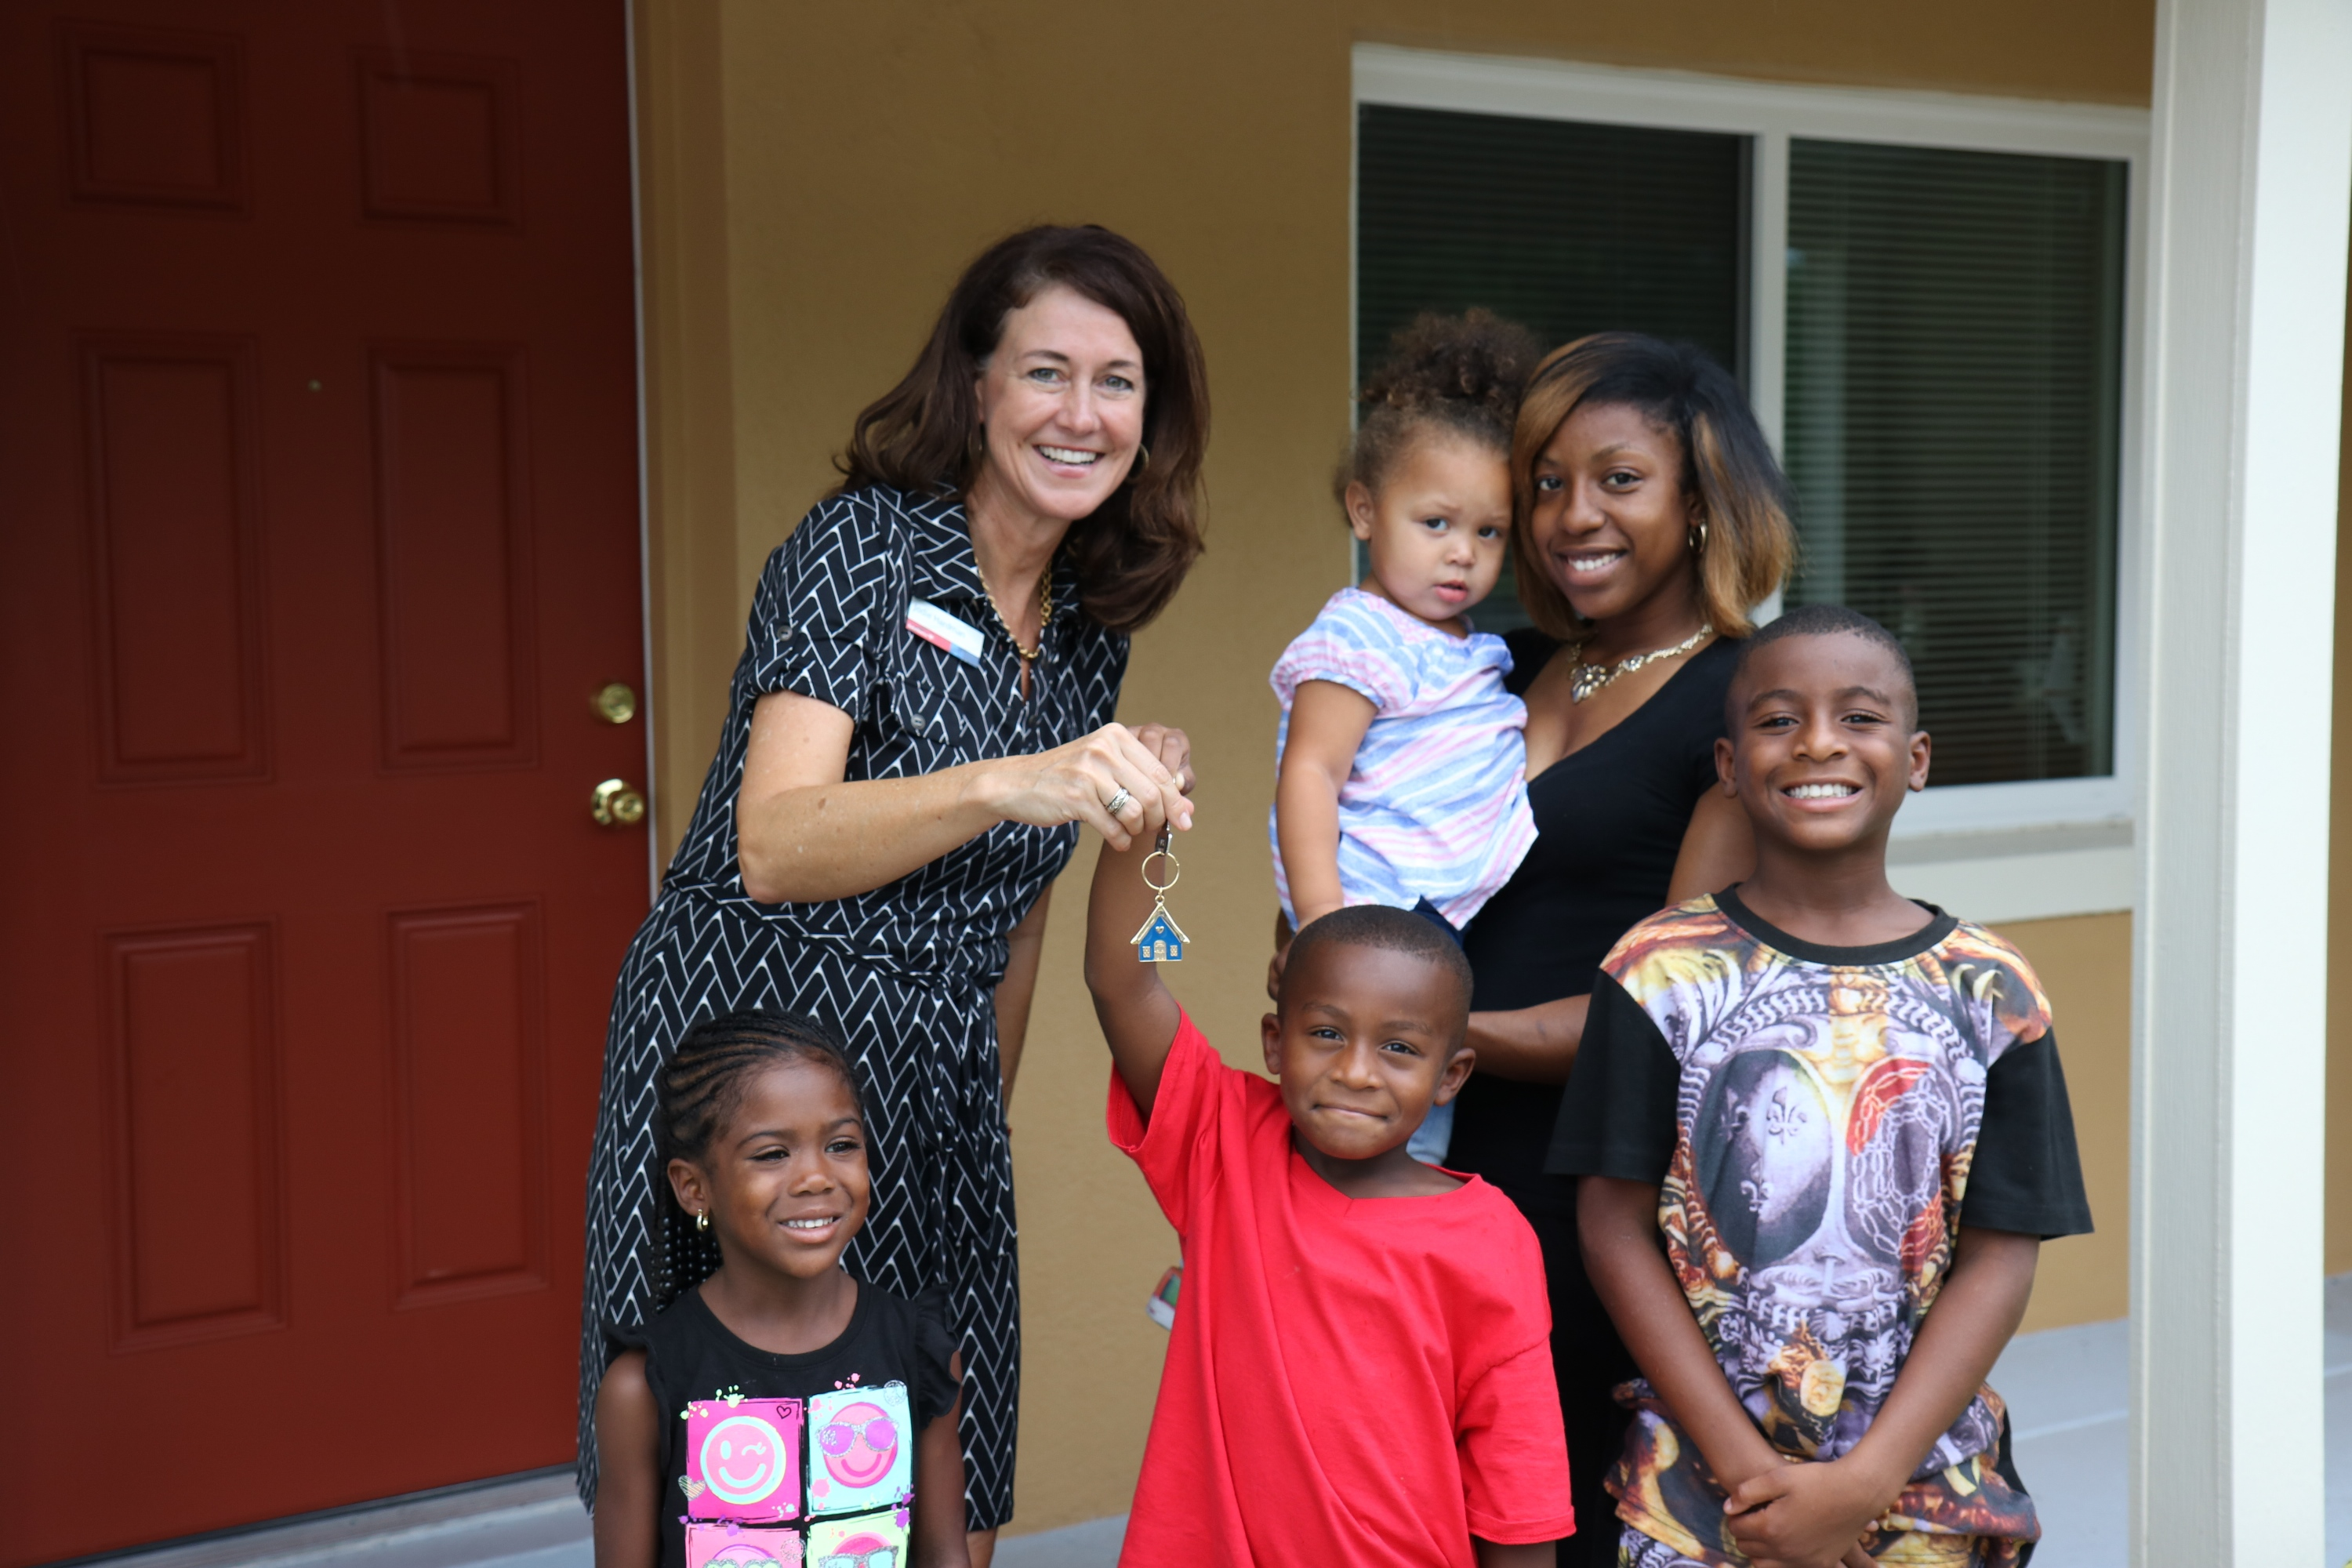 Marcella and her family pictured with Jodi Hardman, SVP, Market Manager, Bank of America